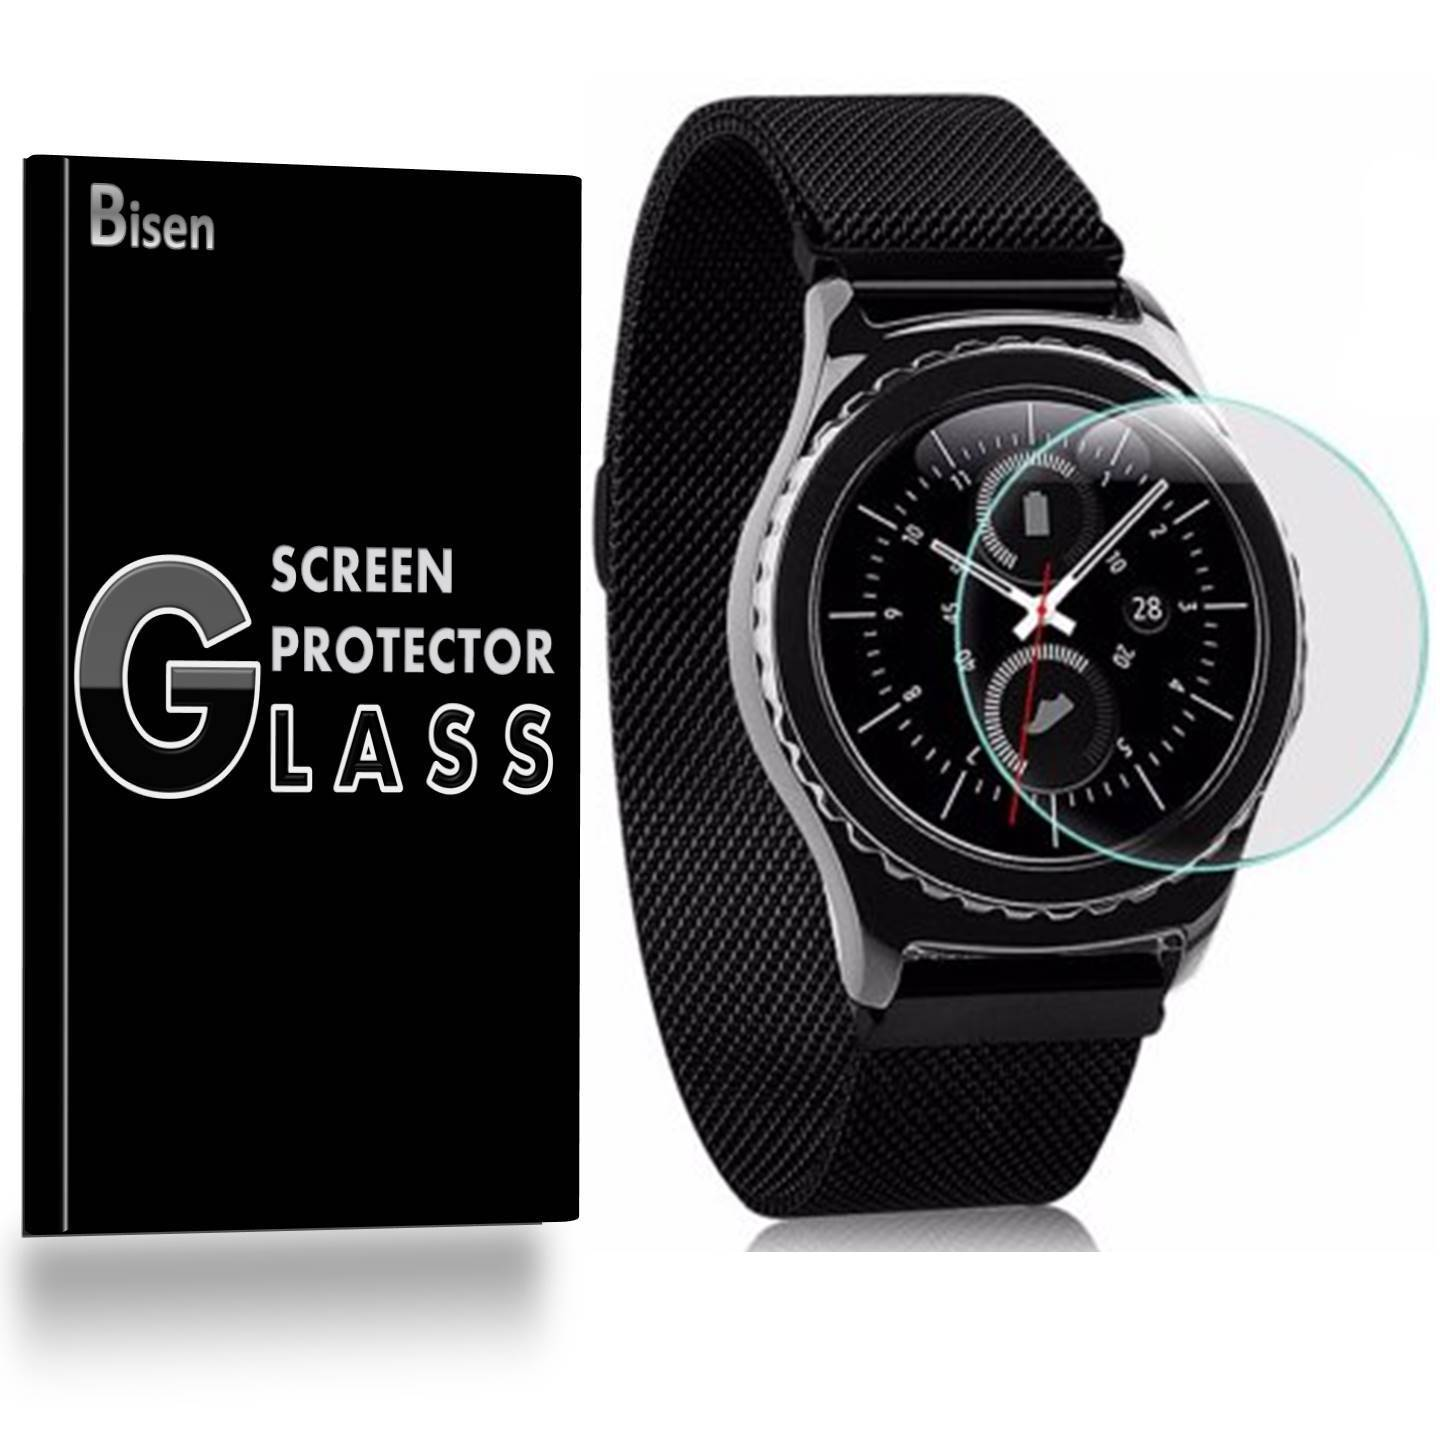 Samsung Gear S3 Classic [3-Pack BISEN] 9H Tempered Glass Screen Protector, Anti-Scratch, Anti-Shock, Shatterproof, Bubble Free